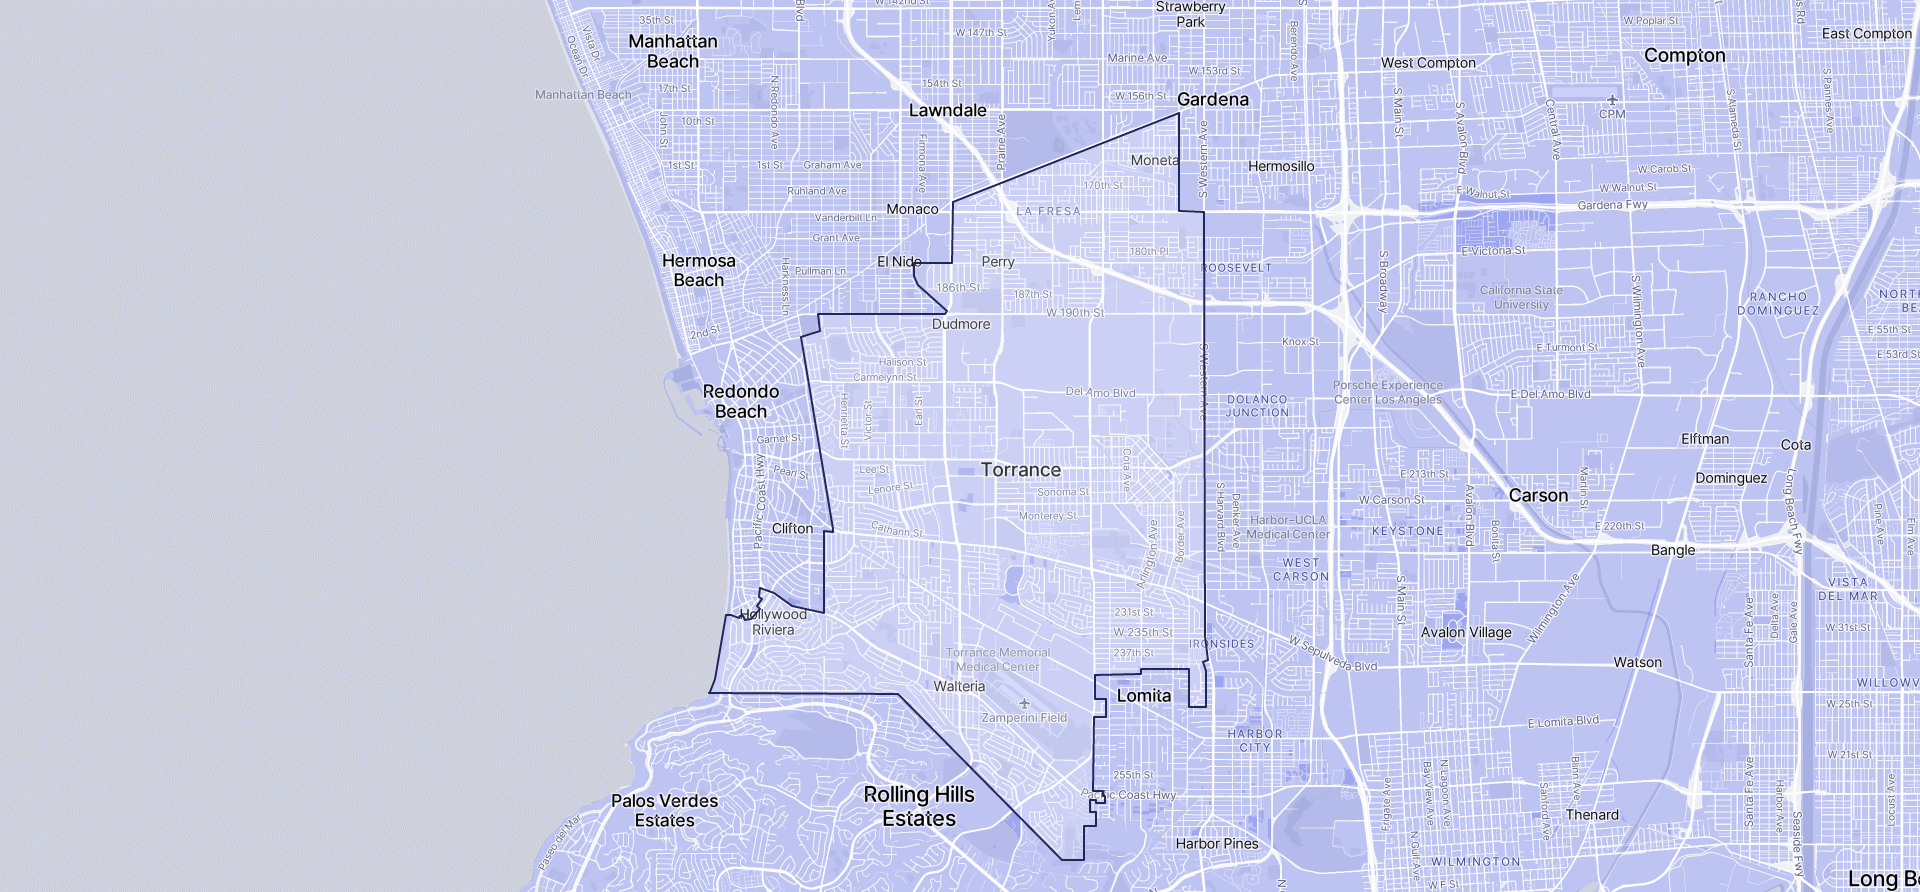 Image of Torrance boundaries on a map.